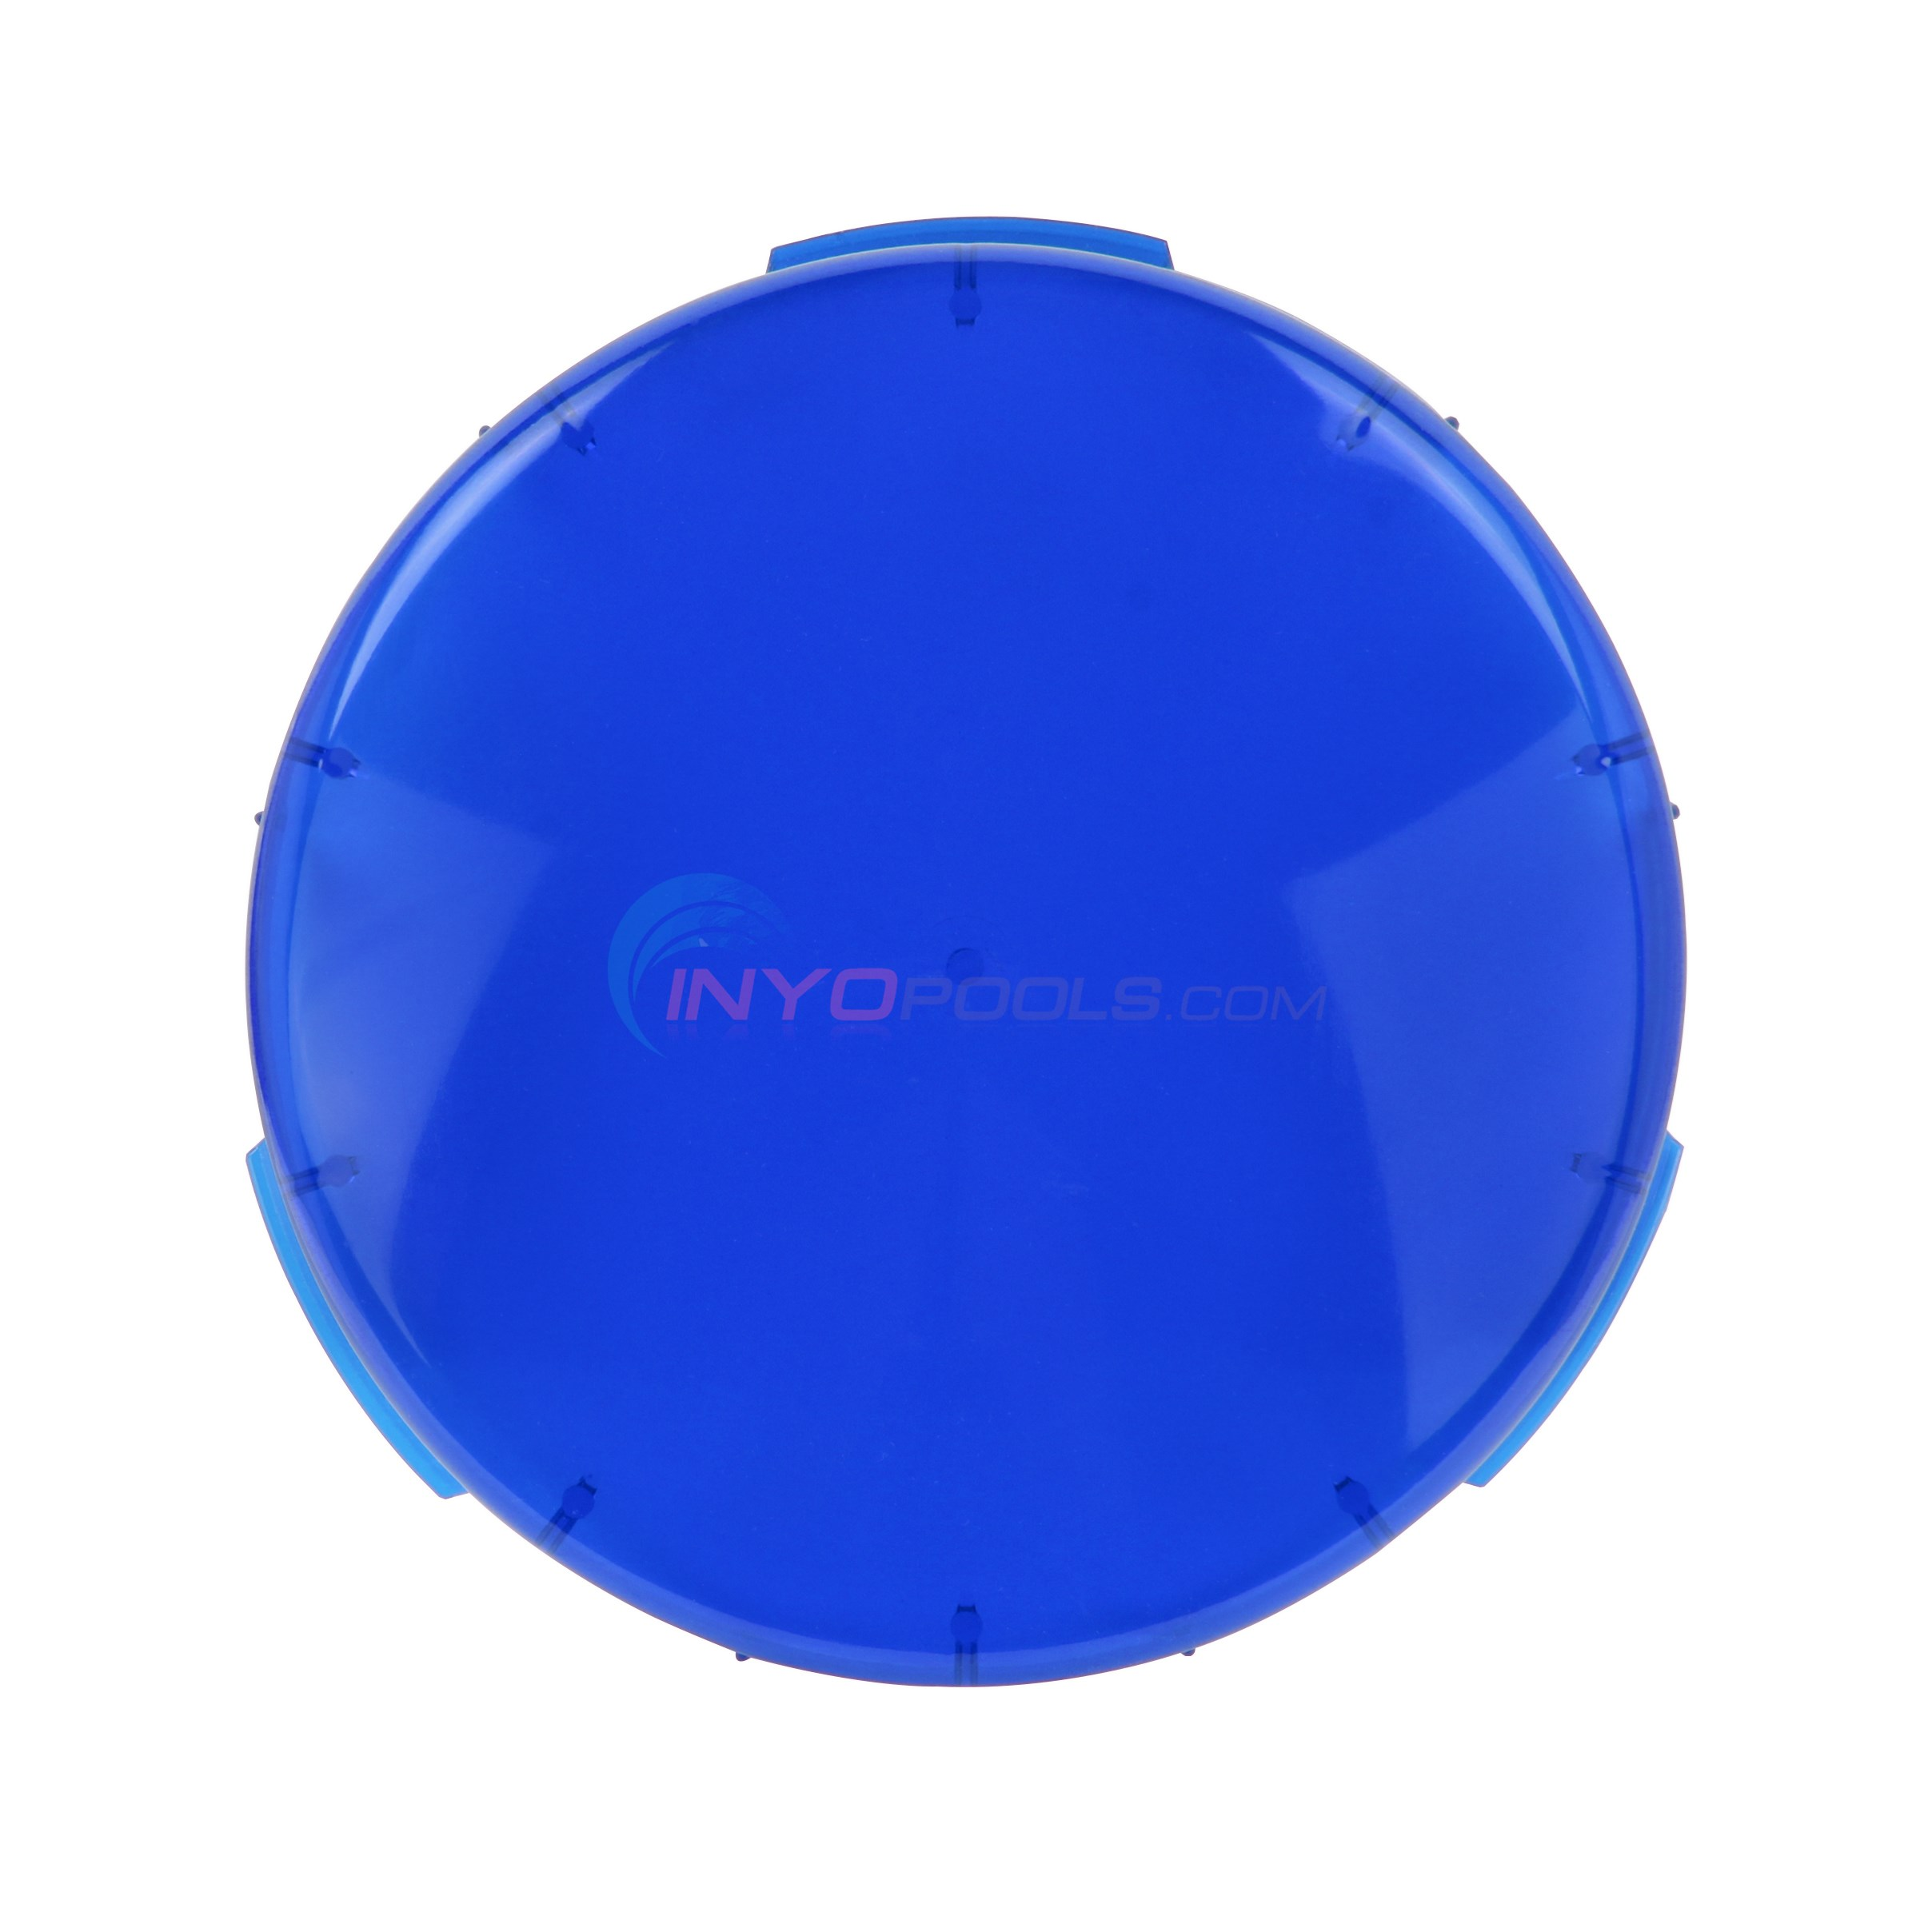 Kwik-change Lens Cover (Blue)